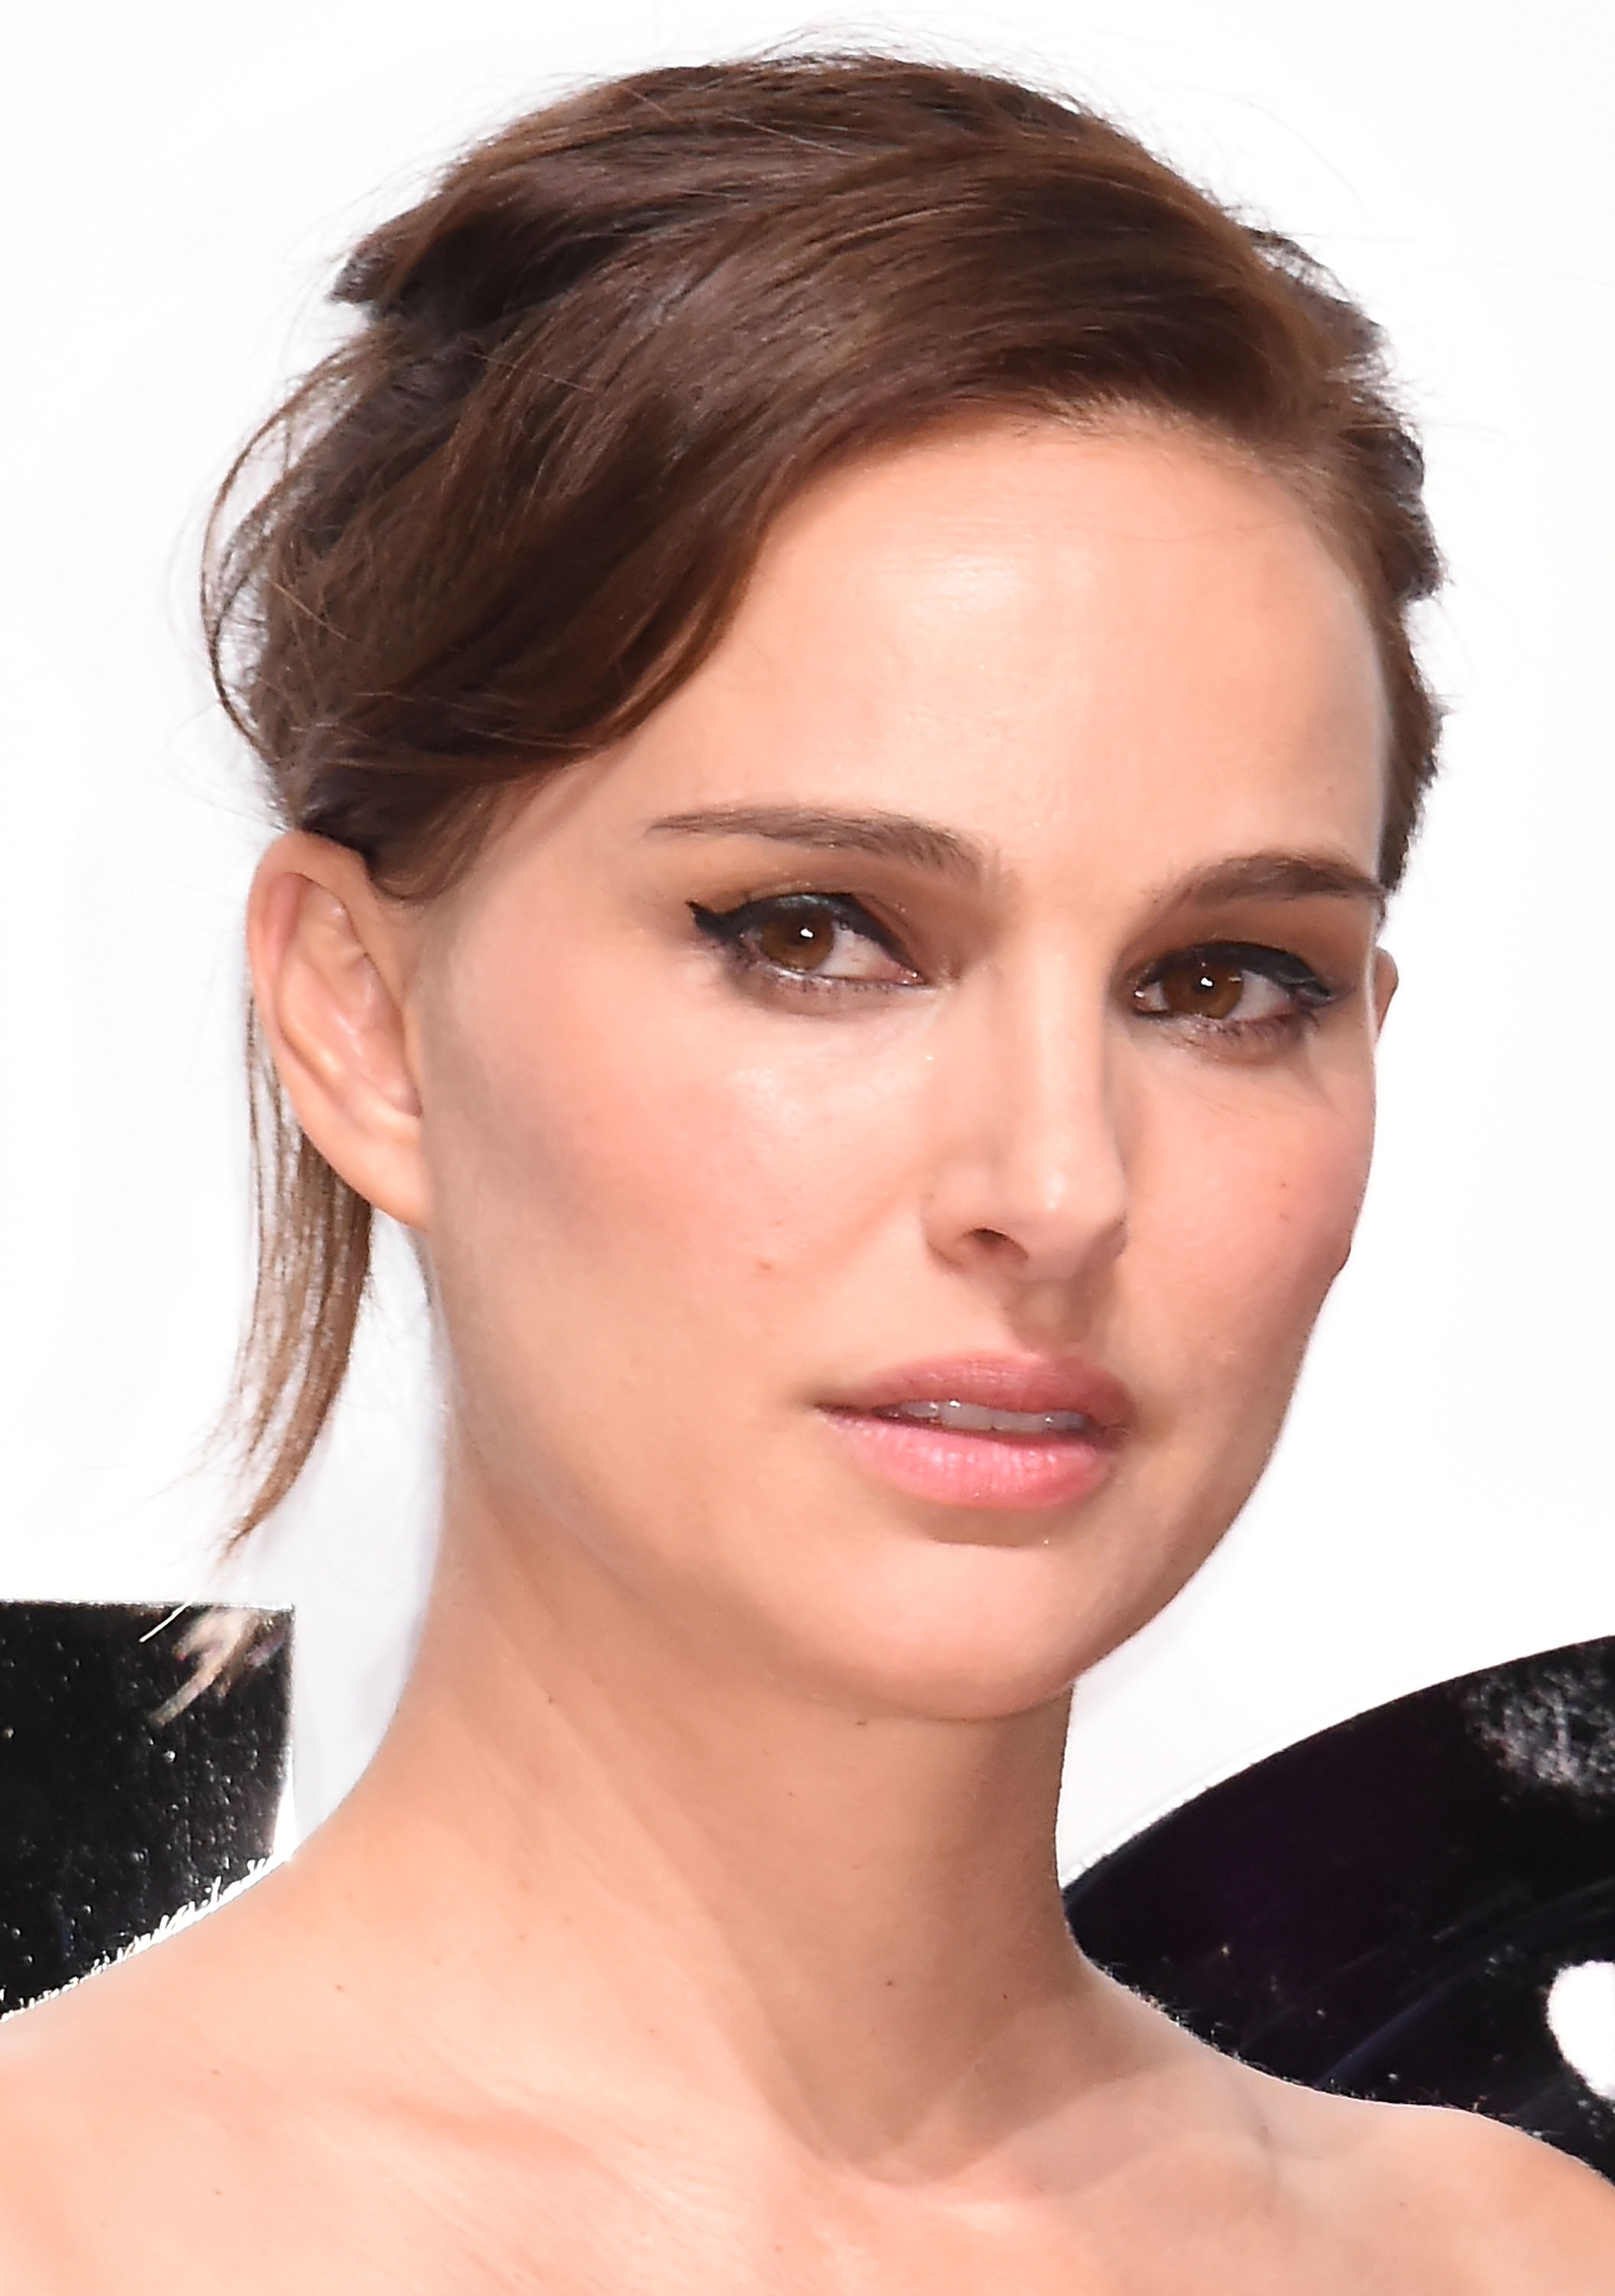 """<p>Many paid-up celebrities swear by expensive creams and complex beauty routines to maintain a flawless complexion but for actress <a href=""""https://style.nine.com.au/natalie-portman"""" target=""""_blank"""" draggable=""""false"""">Natalie Portman</a> the key to her lit-from-within look are her dietary choices.</p> <p>The Academy Award-winner and long-time vegan revealed that since she adopted the plant-based diet six years ago she has been free of breakouts.</p> <p>""""I'm vegan and I found my skin was much, much better than when I was a vegetarian,""""<br /> <br /> """"I cut out dairy and eggs, and I never had a breakout after. It's personal; everyone has different sensitivity. I also did it when I was 30, so it might have been an age thing."""" Portman told <em><a href=""""https://www.thecut.com/2017/08/natalie-portman-miss-dior-perfume-beauty-routine-interview.html"""" target=""""_blank"""" draggable=""""false"""">The Cut.</a></em></p> <p>The <em>Jackie</em> star's flawless complexion has made her a red-carpet standout since she burst into the spotlight over 20 years ago. </p> <p>Her first major starring role in <em>Star Wars: Episode I-The Phantom Menace</em> in 1999 saw her favour youthful beauty looks such as a minimal complexion and pink glossy lips. Later evolving into a sleek and polished wife, mother and Oscar-winner, lighting up the red carpet with her smouldering eye looks and chic hairstyles.</p> <p>Click through to see the beauty evolution of Natalie Portman.</p>"""